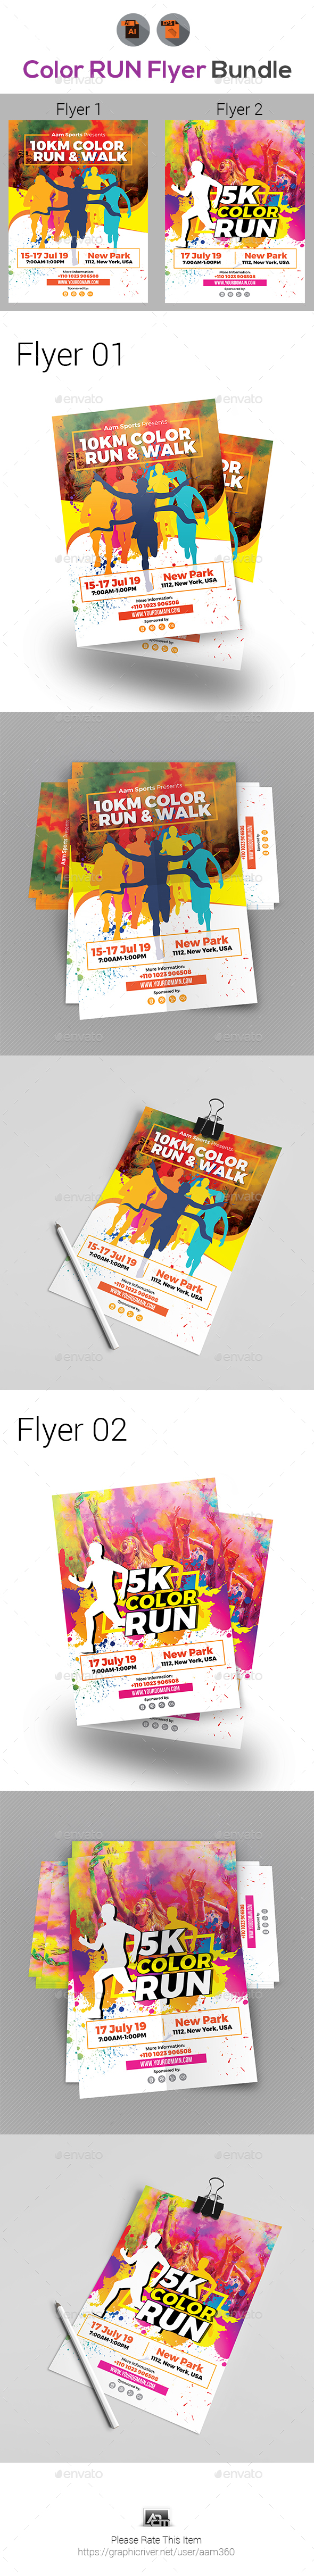 Color Run Festival Flyers Bundle - Events Flyers